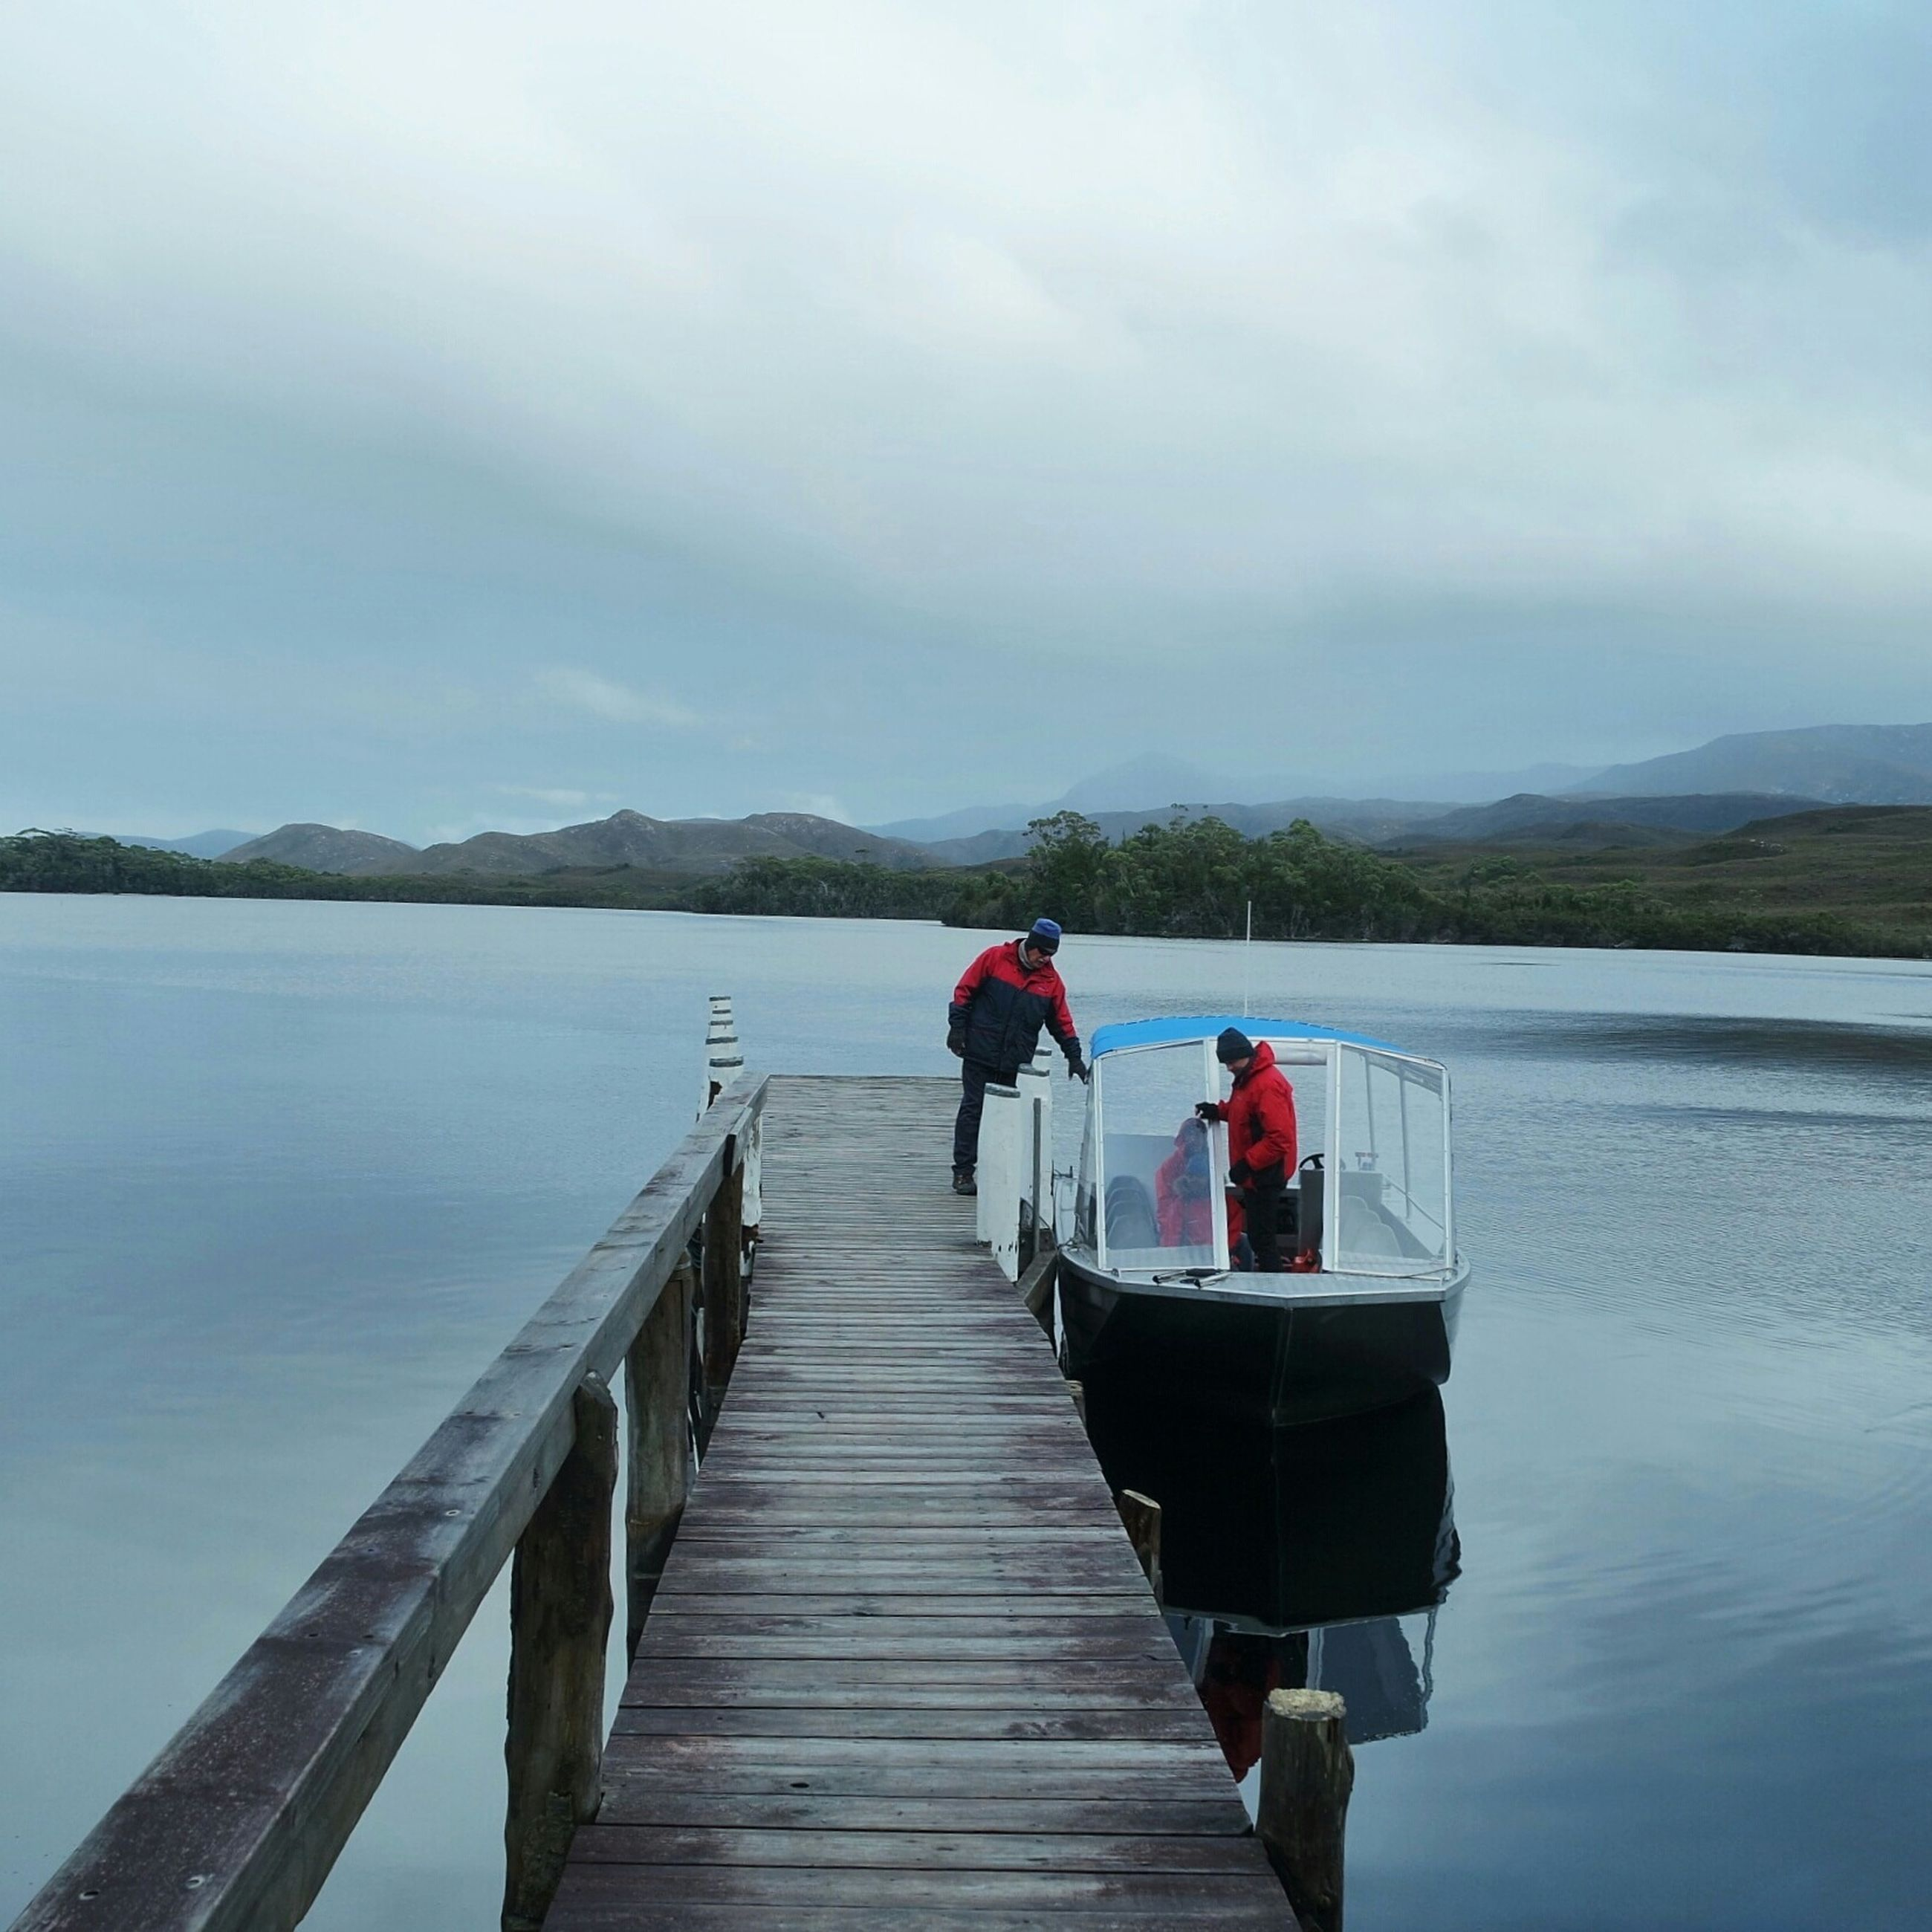 water, mountain, sky, tranquil scene, pier, the way forward, tranquility, lake, scenics, beauty in nature, rear view, nature, mountain range, jetty, railing, cloud - sky, men, boardwalk, leisure activity